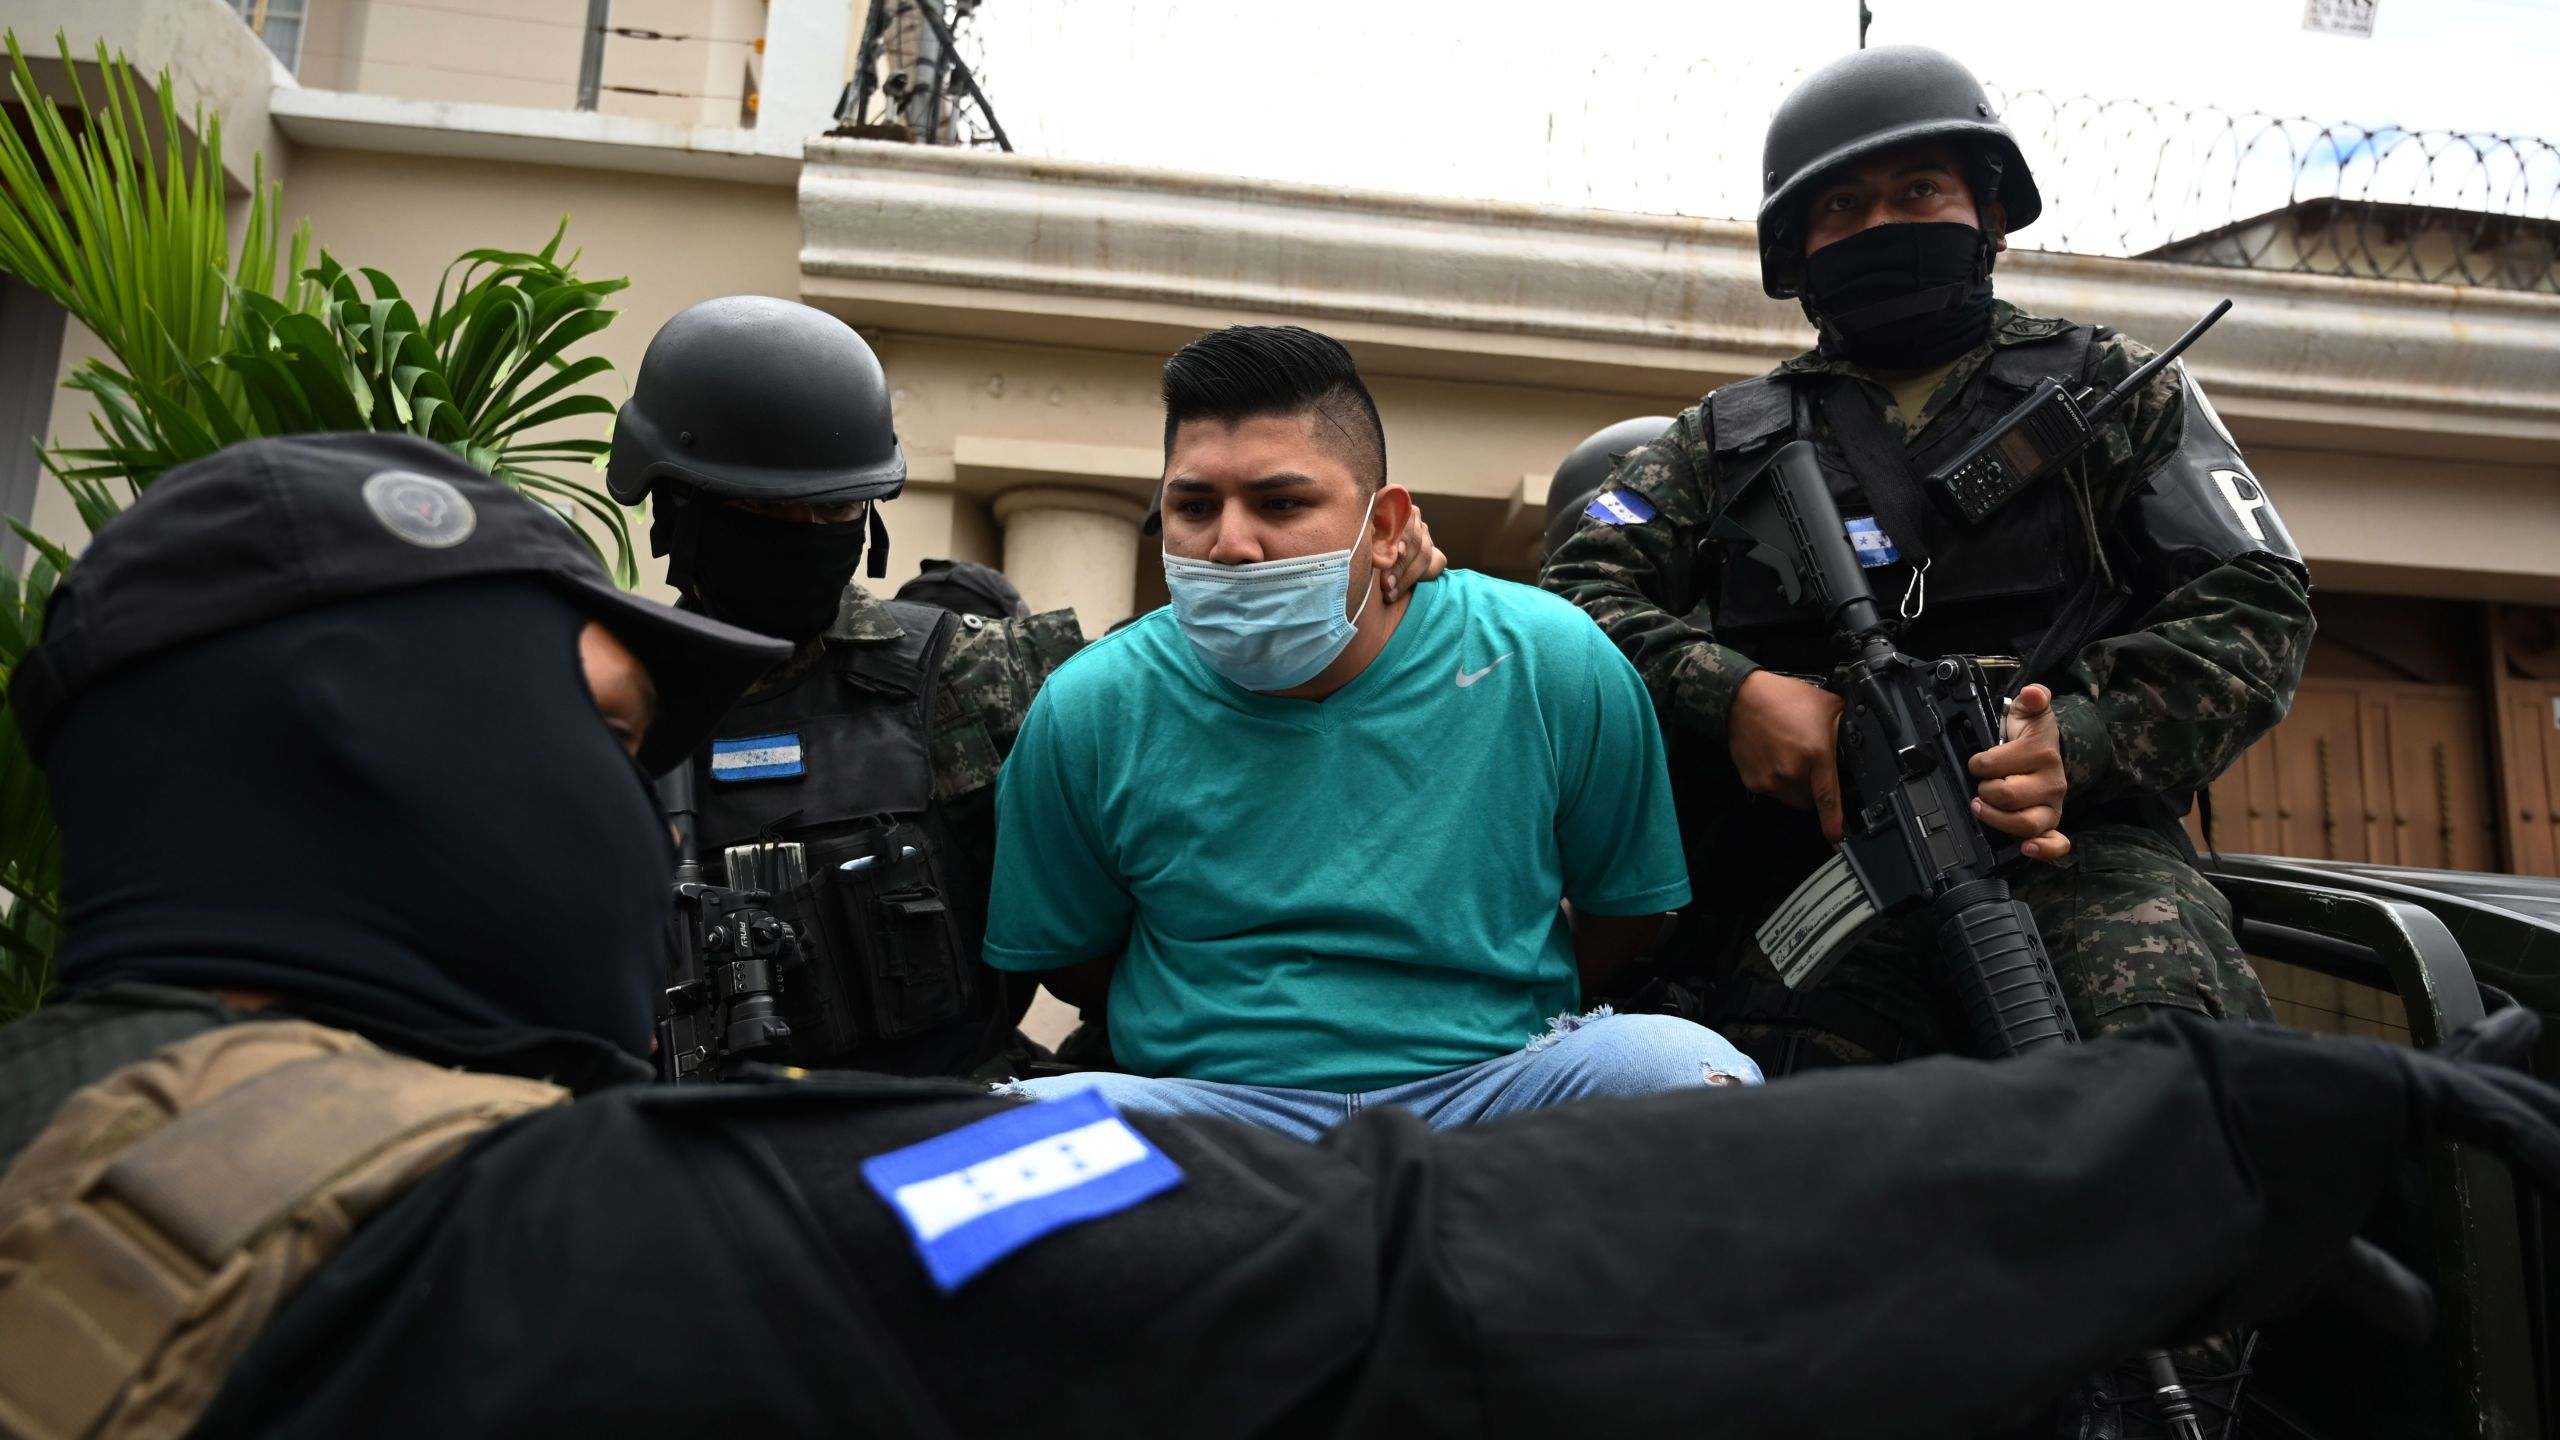 Members of the National Anti Maras and Gangs Force (FNAMP) arrest Jose Alejandro Nunez Cruz (C), alleged administrator of the criminal gang Mara Salvatrucha 13 (MS-13), at an exclusive residential area in Tegucigalpa, on November 26, 2020. (Orlando Sierra/AFP via Getty Images)